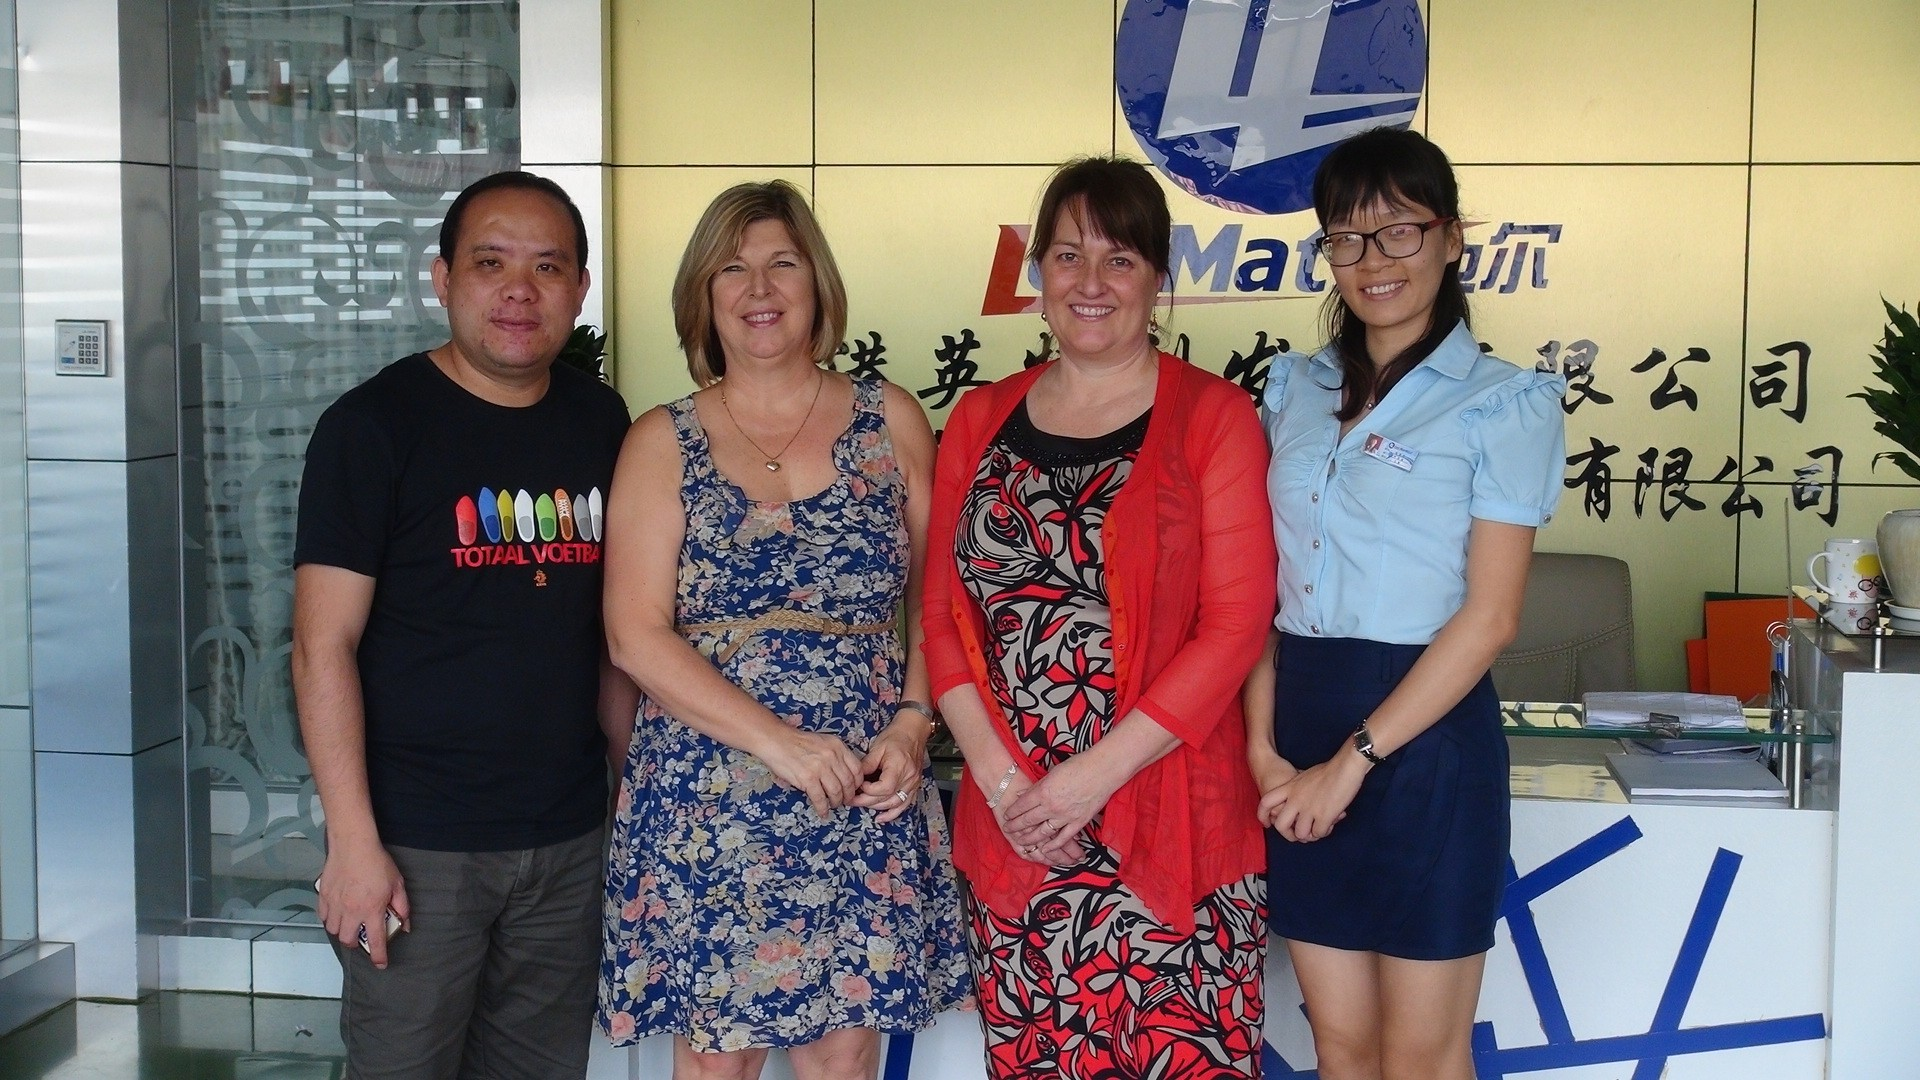 Australian customers come to visit the company